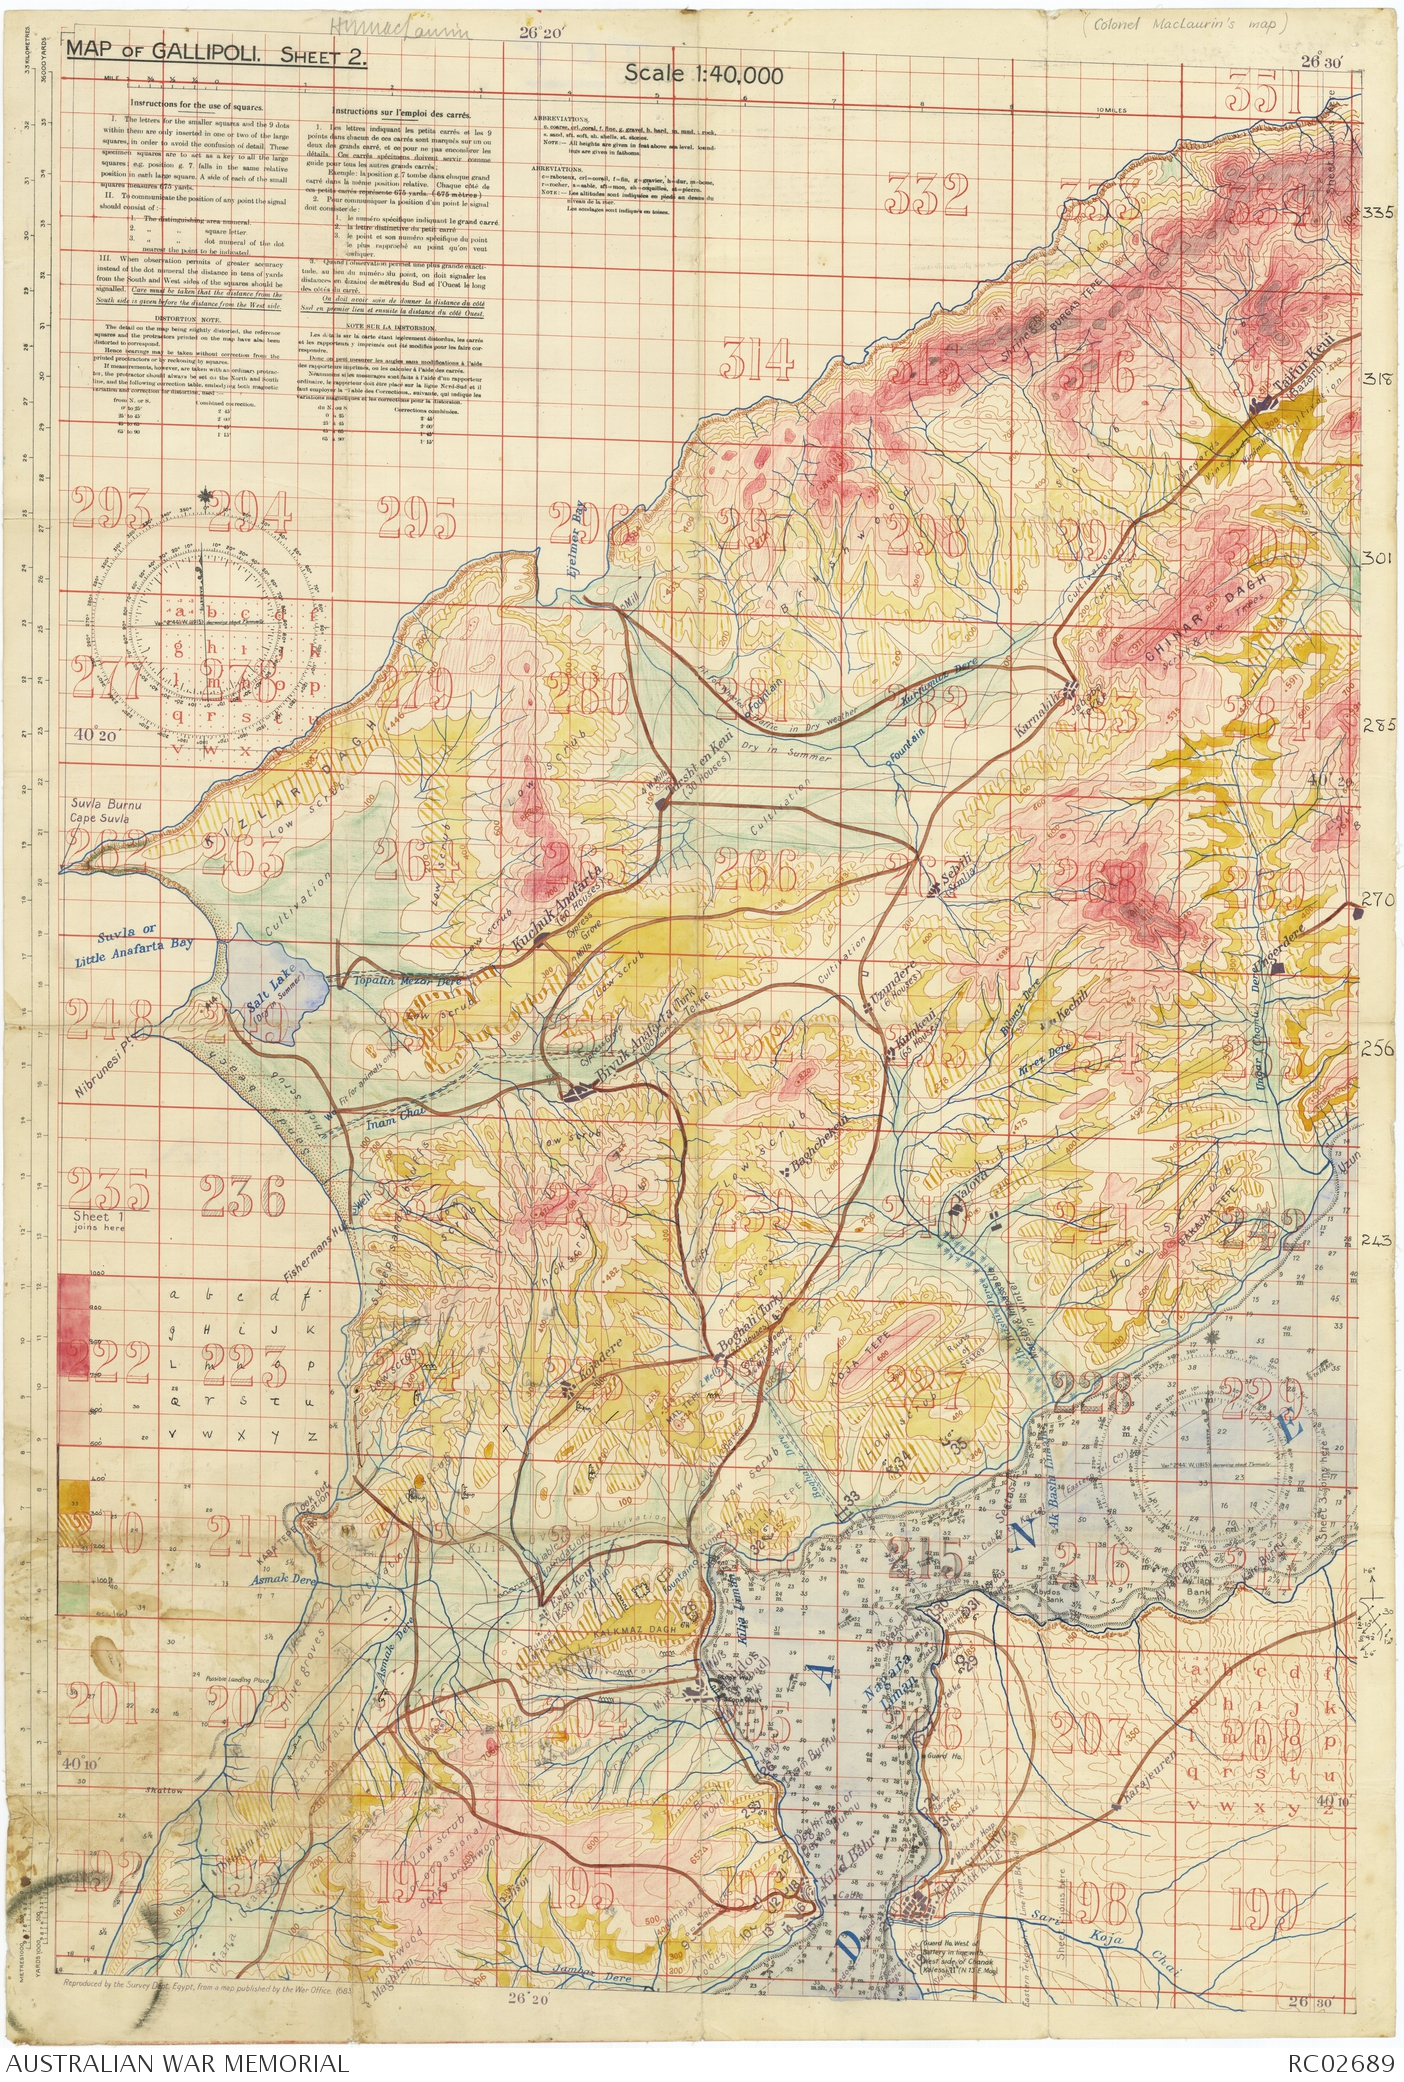 Map of gallipoli sheet 2 140000 the australian war memorial enlarge gumiabroncs Image collections